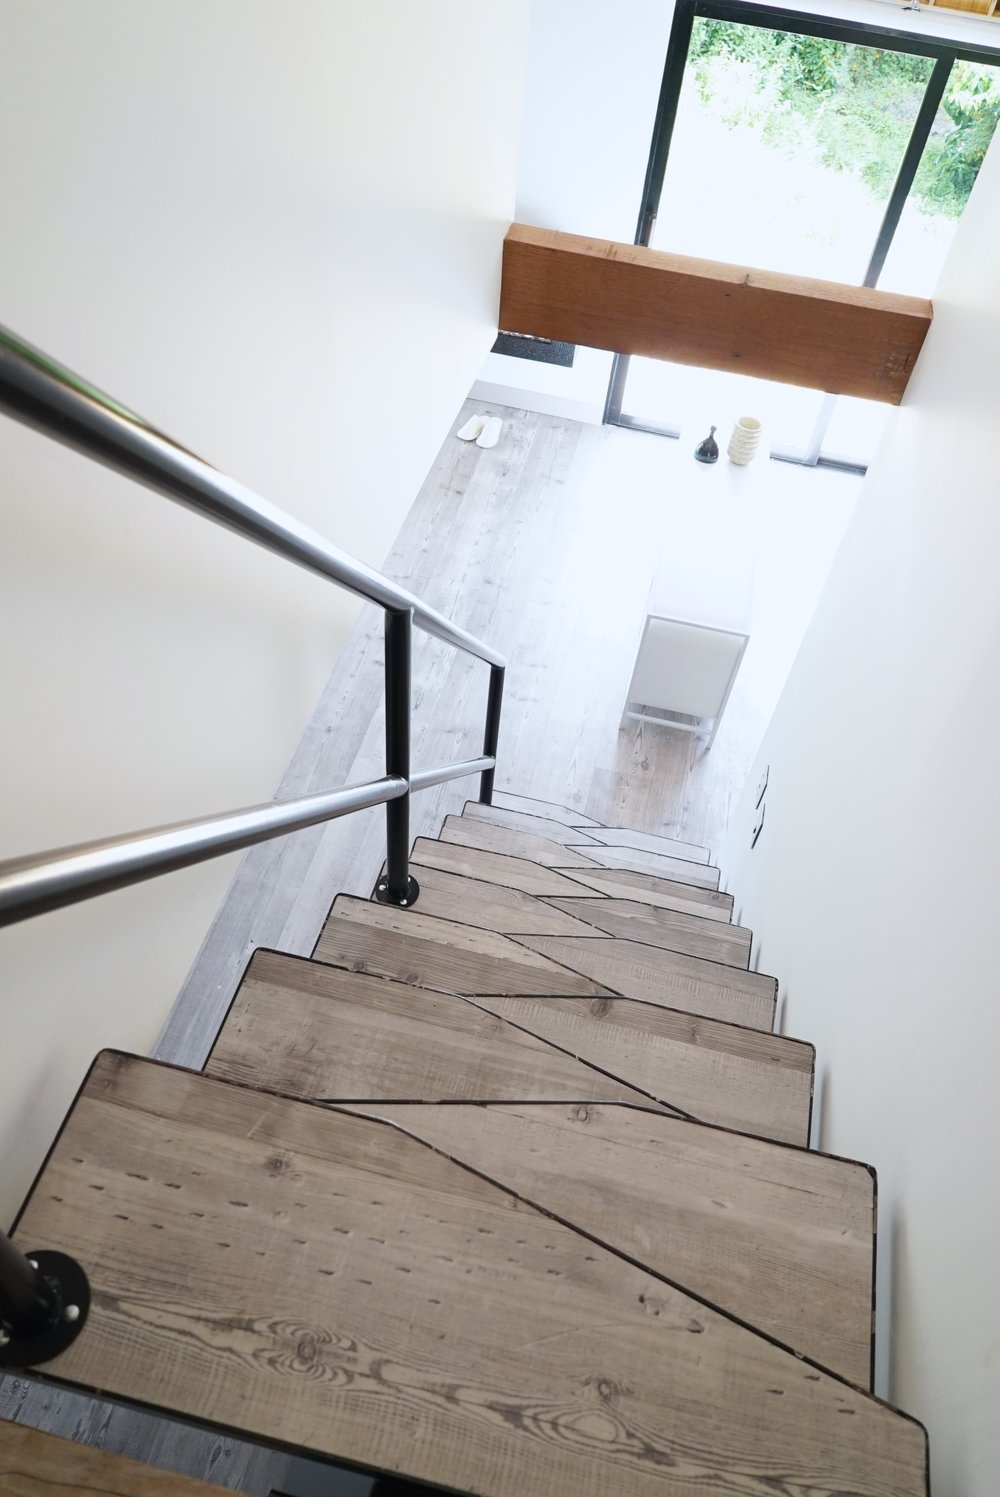 The unusual stairway design features alternating salient beams that facilitate the climb in spaces that are small and steep.